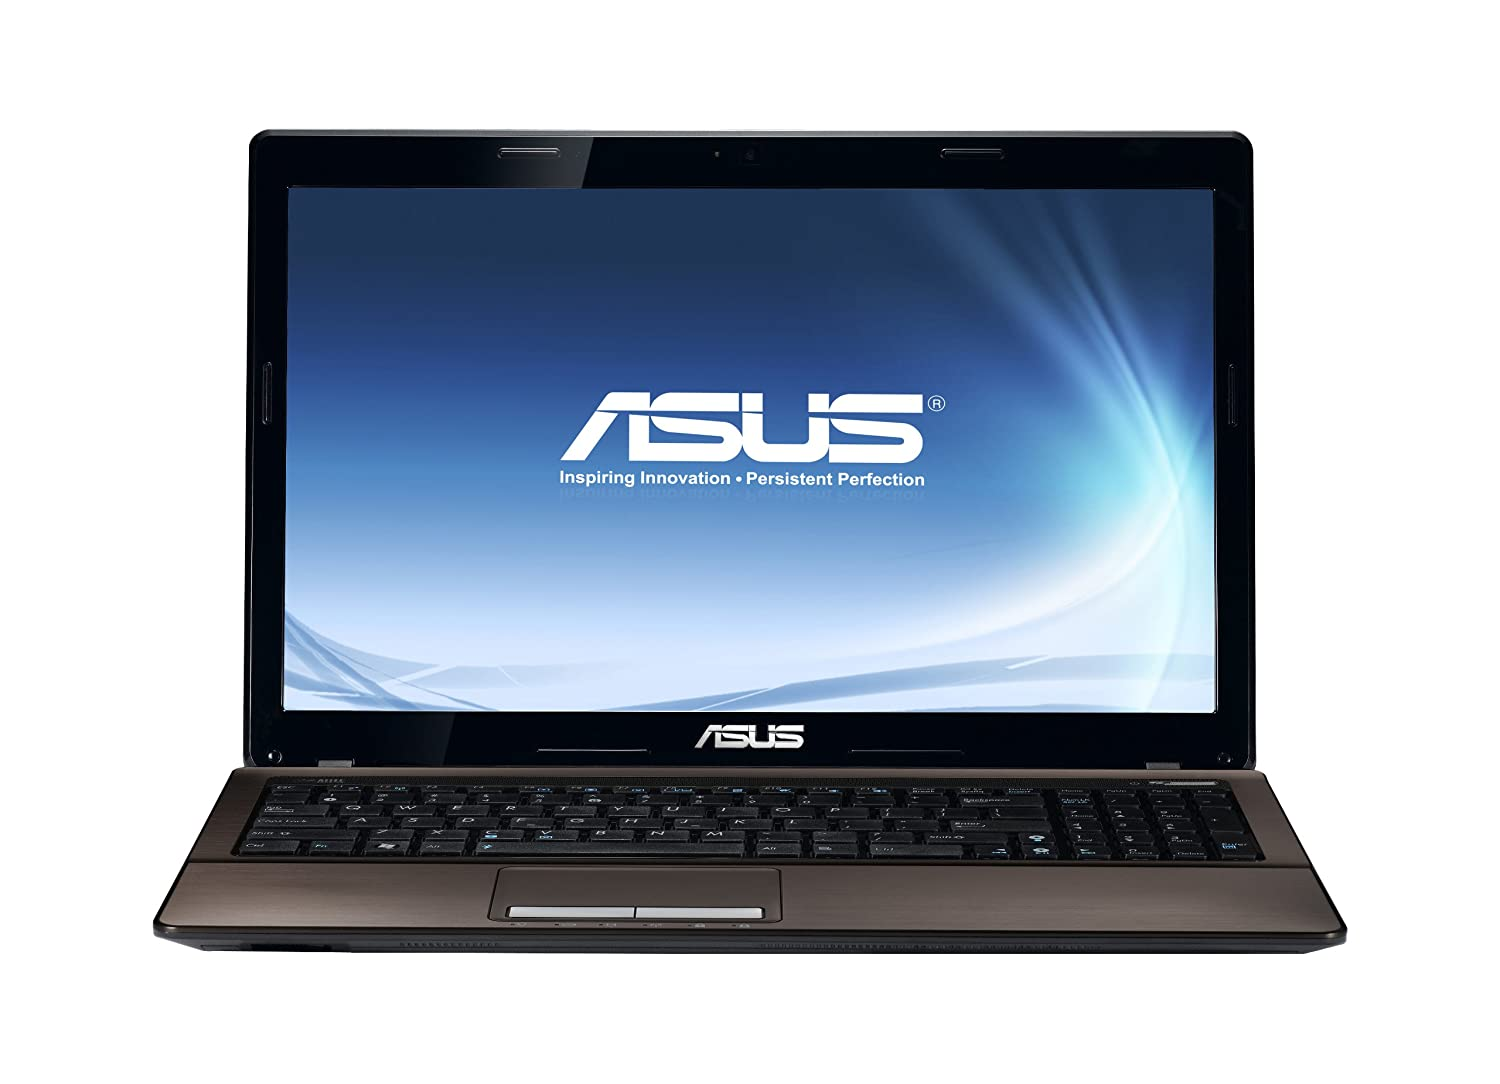 ASUS K53E NOTEBOOK BLUETOOTH 64BIT DRIVER